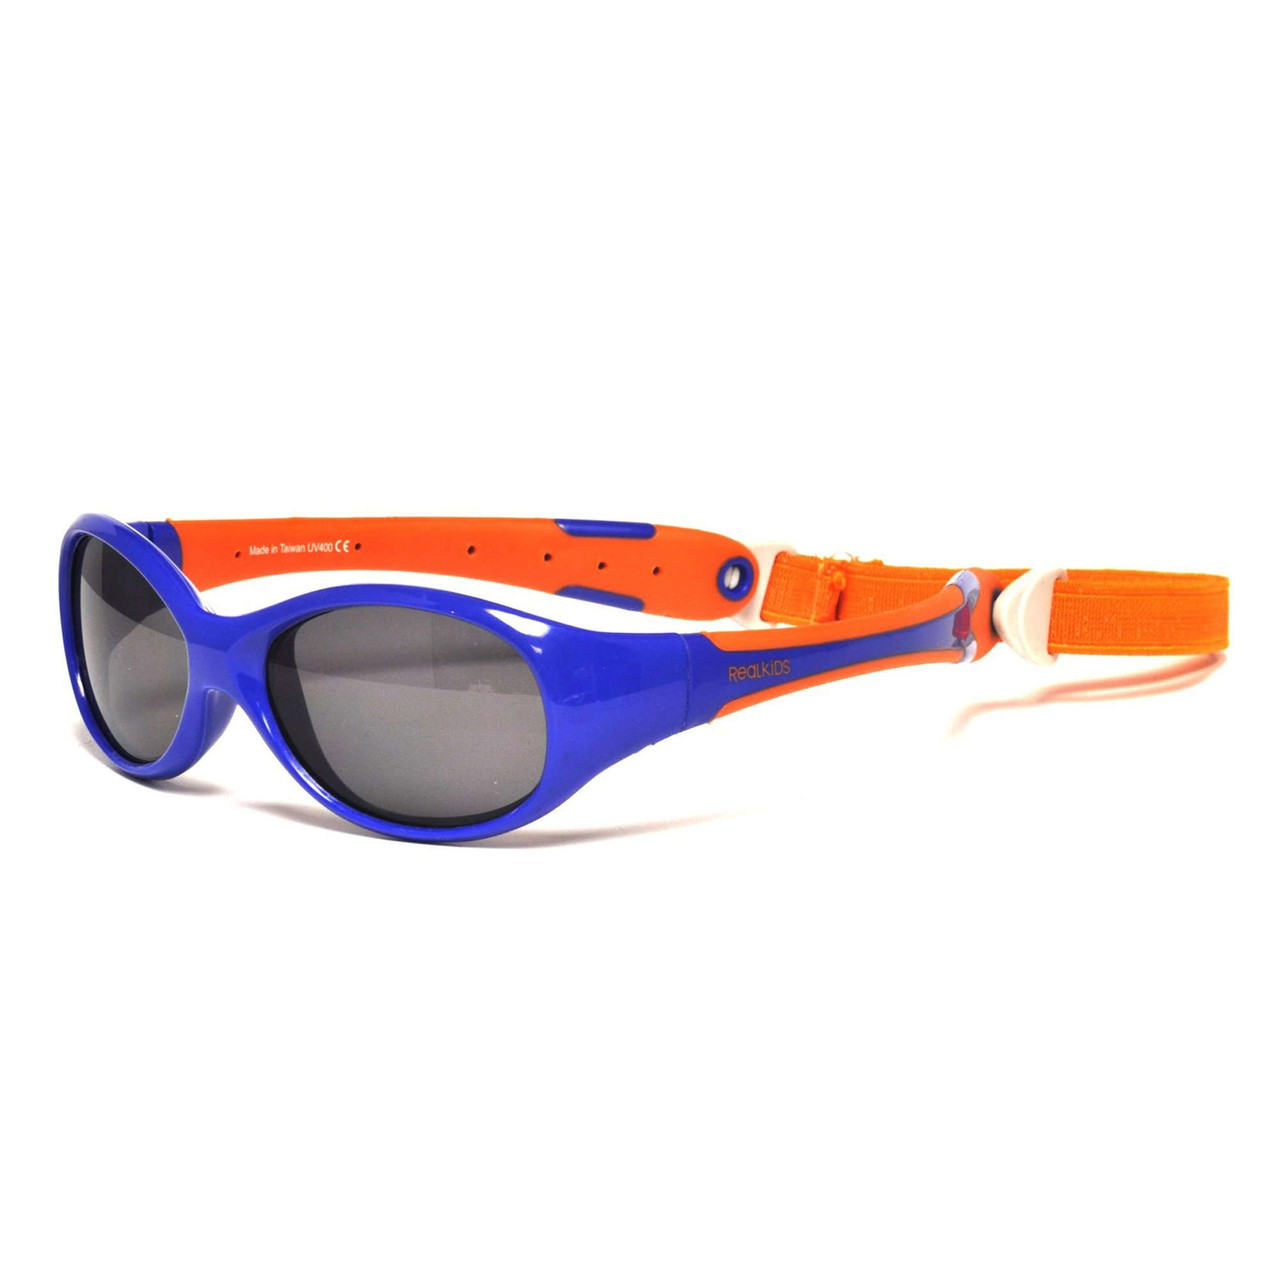 Explorer Sunglasses for Babies Ages 0+ by Real Shades